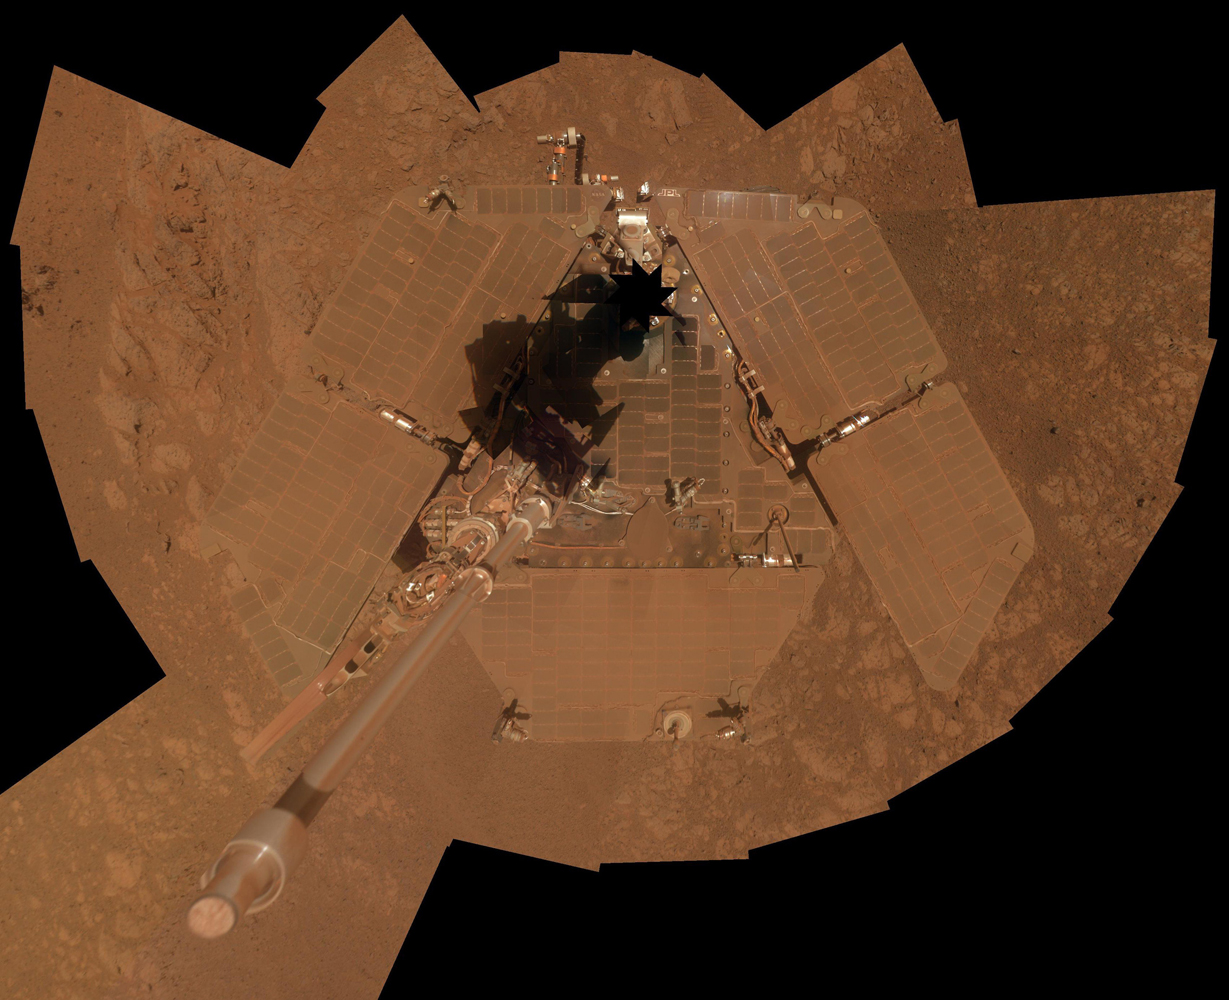 NASA's Mars rover Opportunity took this self-portrait, a mosaic of images, about three weeks before completing a decade of work on Mars in January 2014. The rover's panoramic camera took the images during the interval January 3, 2014, to January 6, 2014, a few days after winds removed some of the dust that had been accumulating on its solar panels.